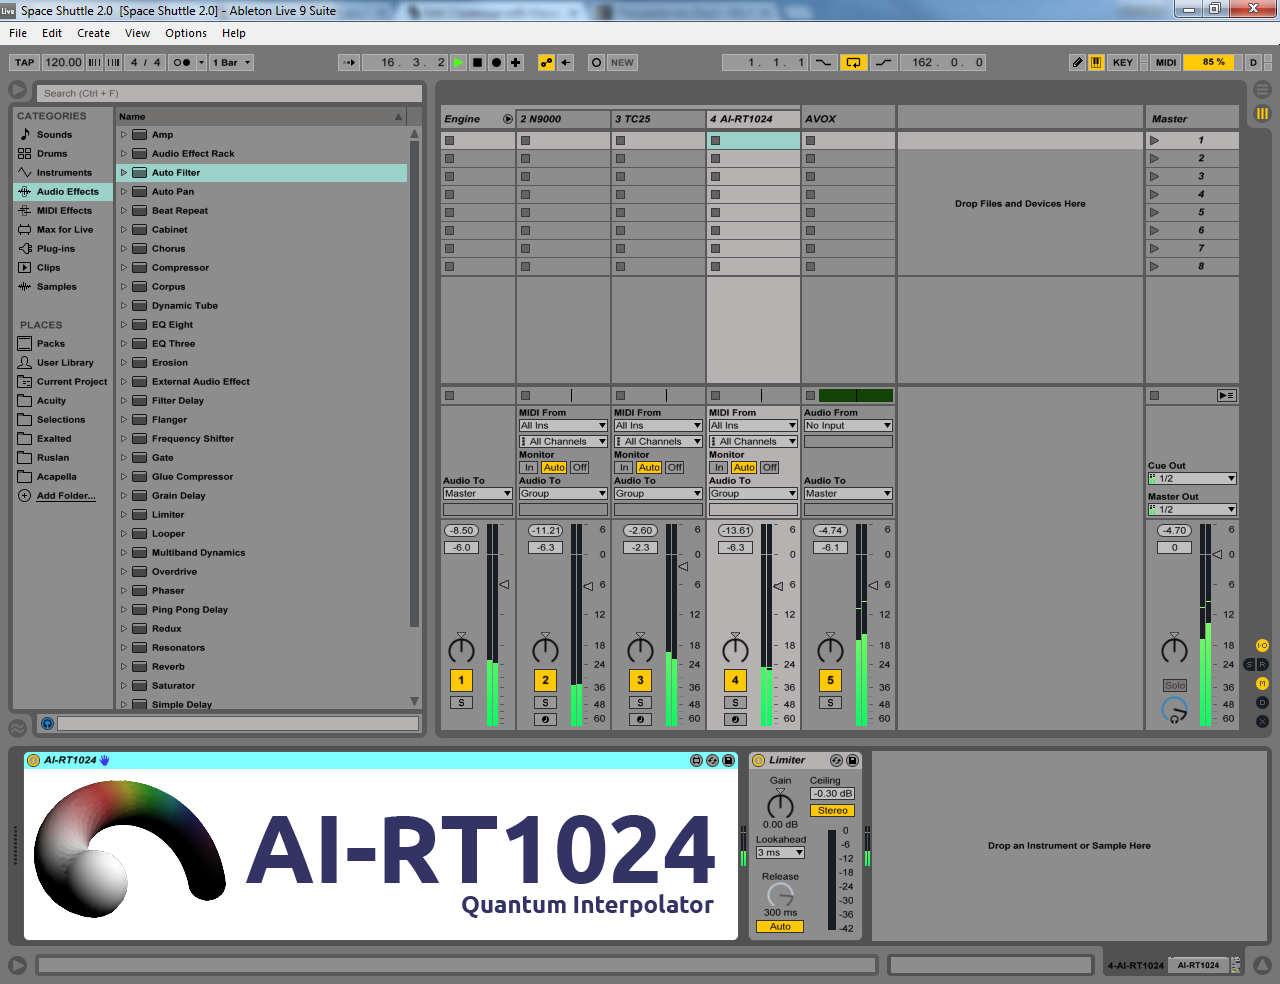 AI-RT1024 in Ableton Live 9